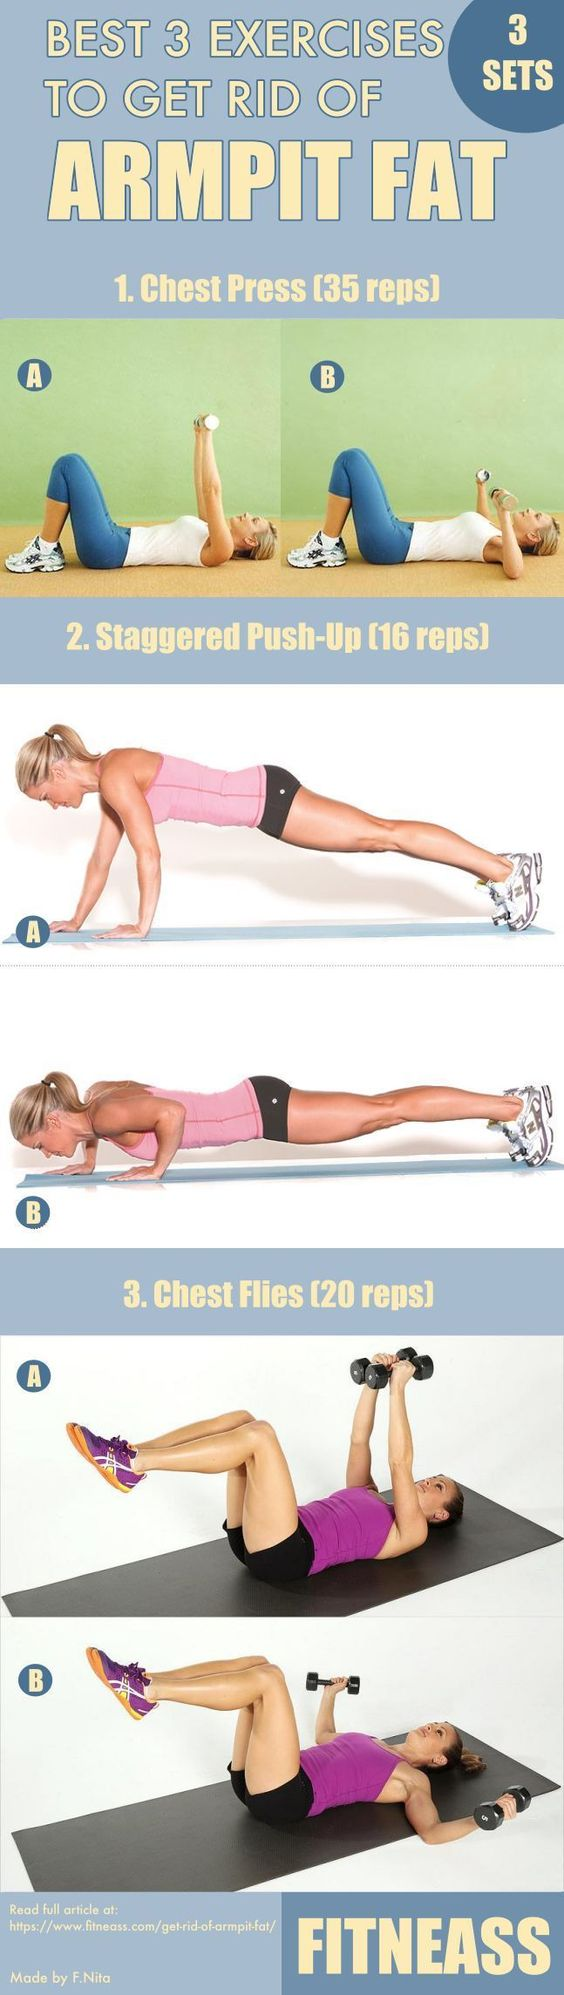 See more here ► https://www.youtube.com/watch?v=fyYVMDPMa68 Tags: best and fastest way to lose weight - Best 3 Exercises To Get Rid Of Armpit Fat #strong #fitness